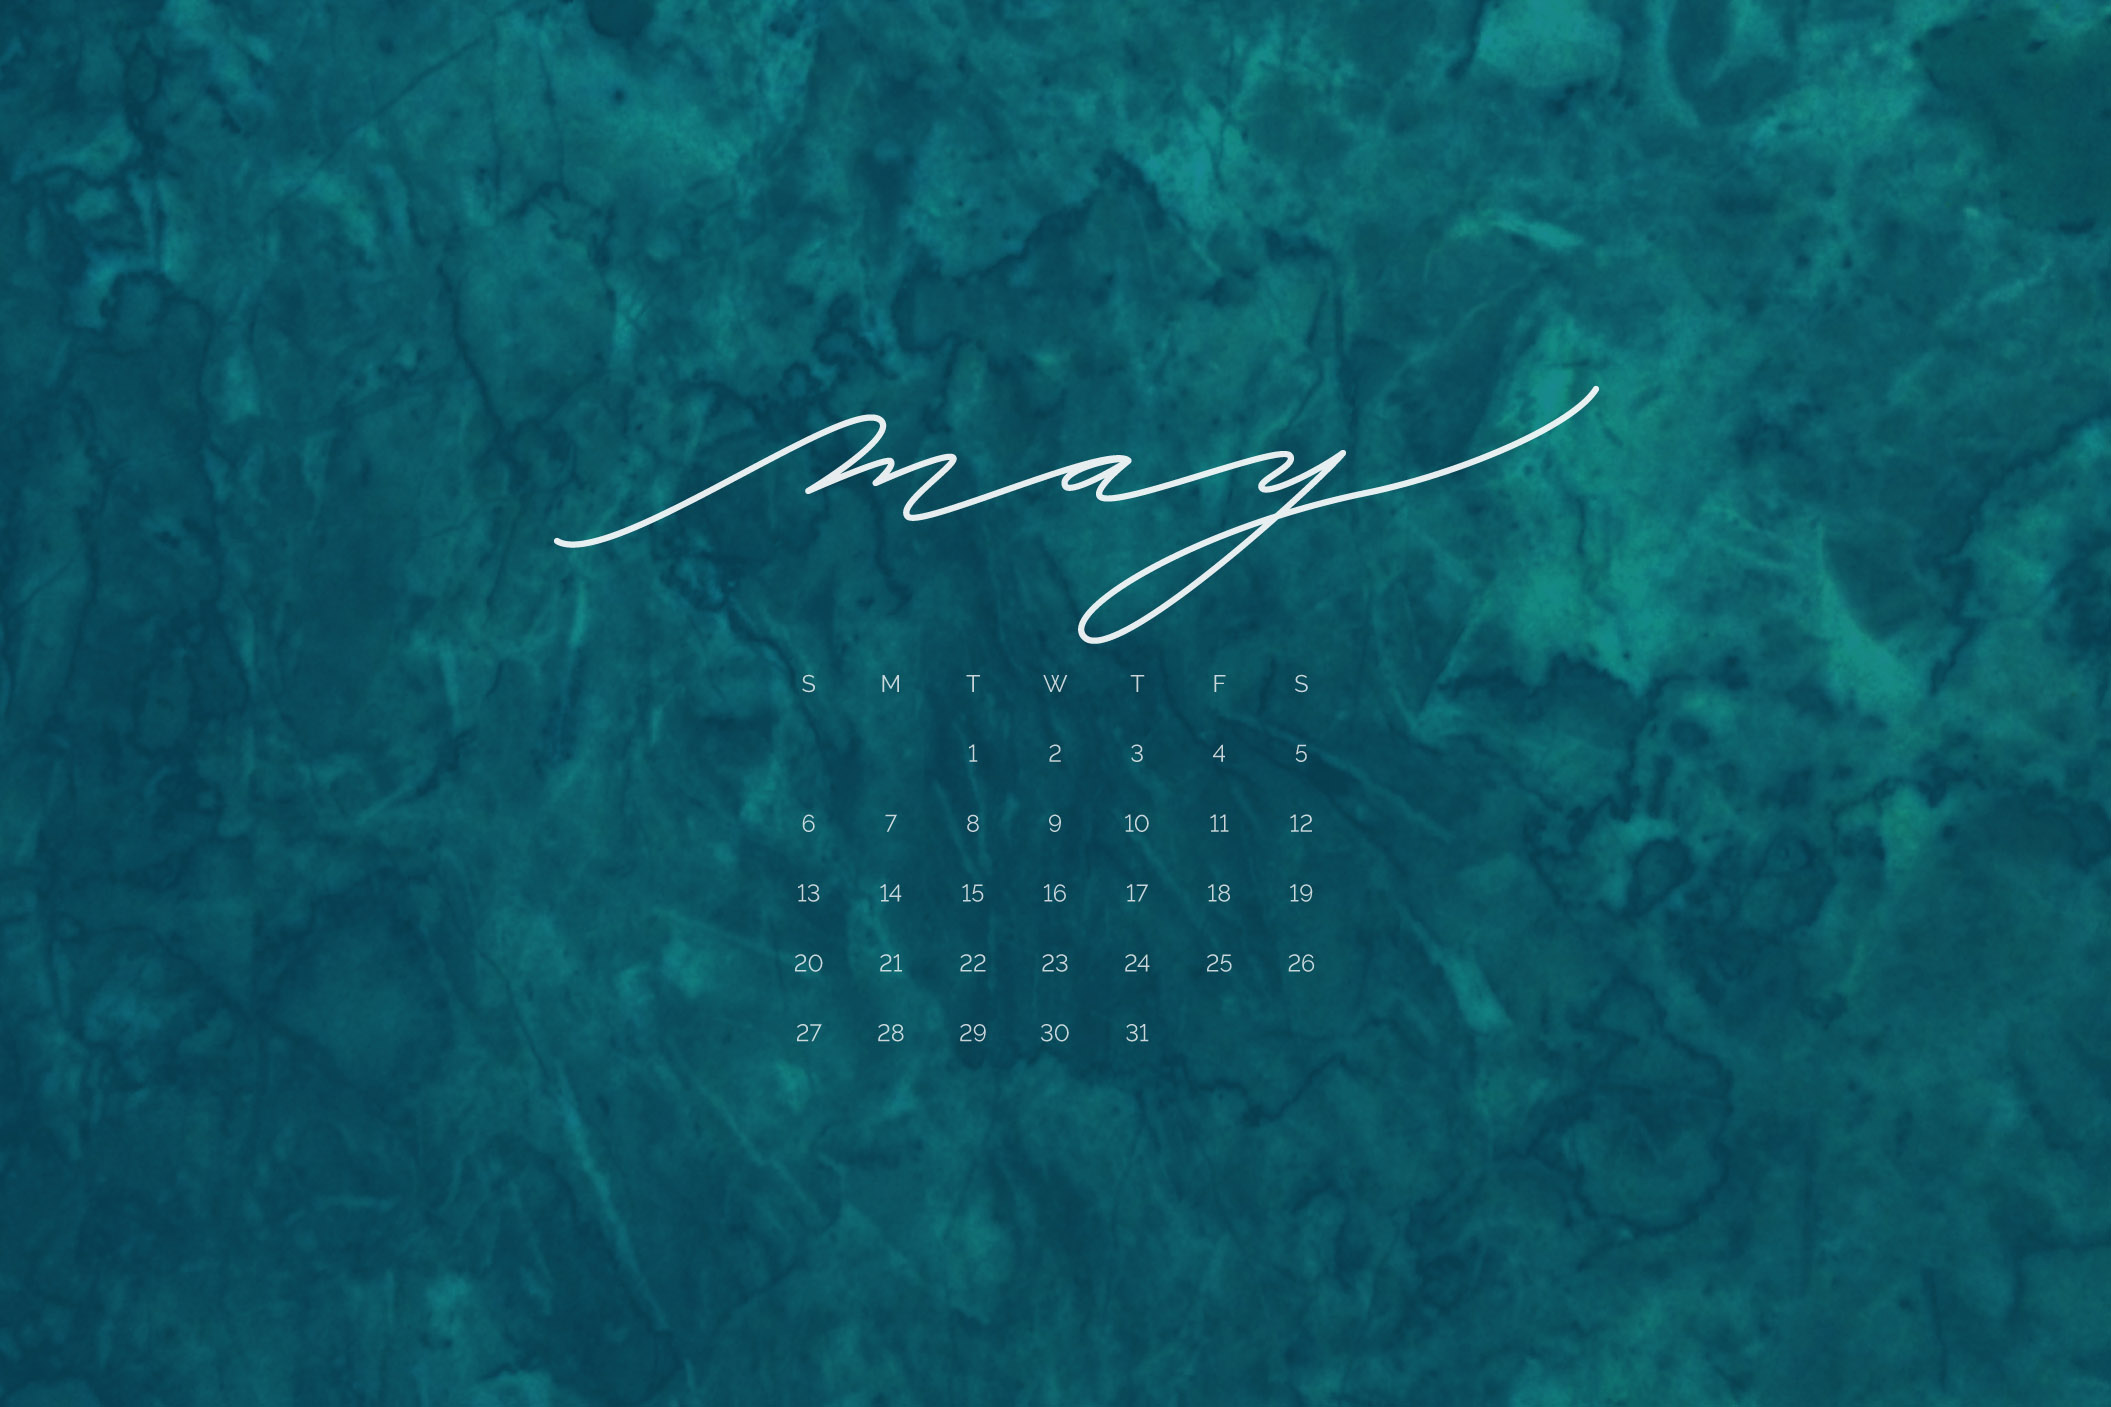 Download free desktop, mobile, and printable calendar for May 2018 | © typeandgraphicslab.com | For personal use only